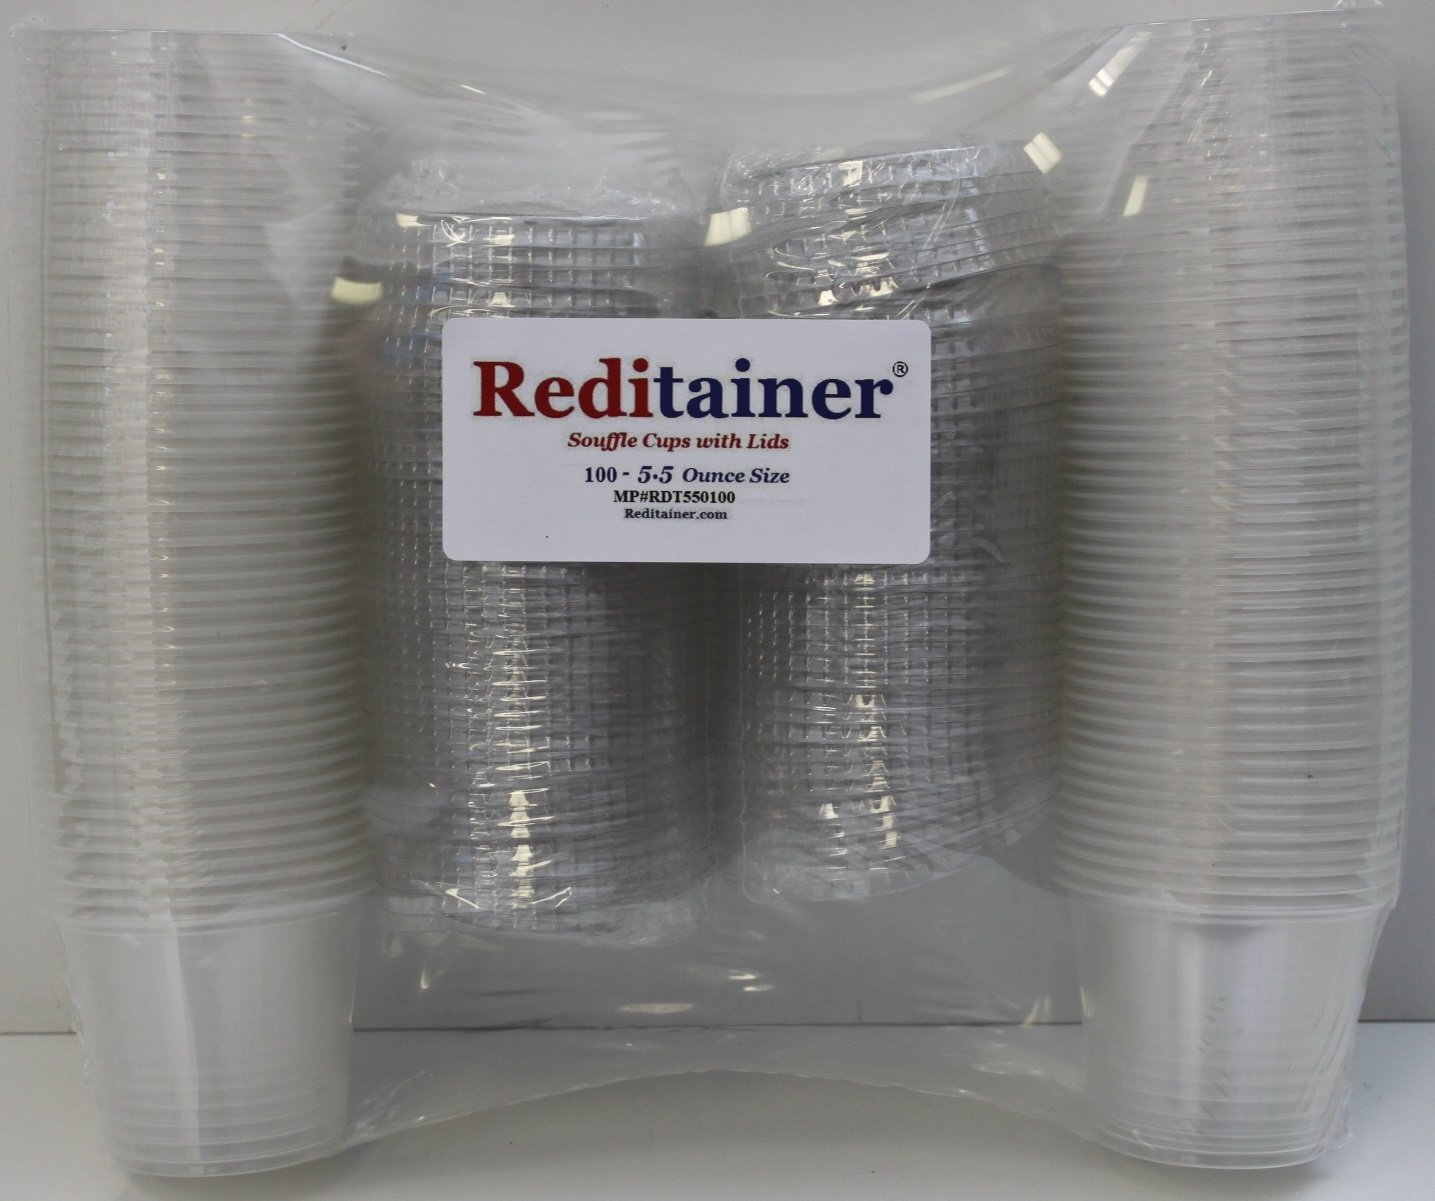 Reditainer Jello Shot Souffle Portion Cups with Lids 250, 1 ounce